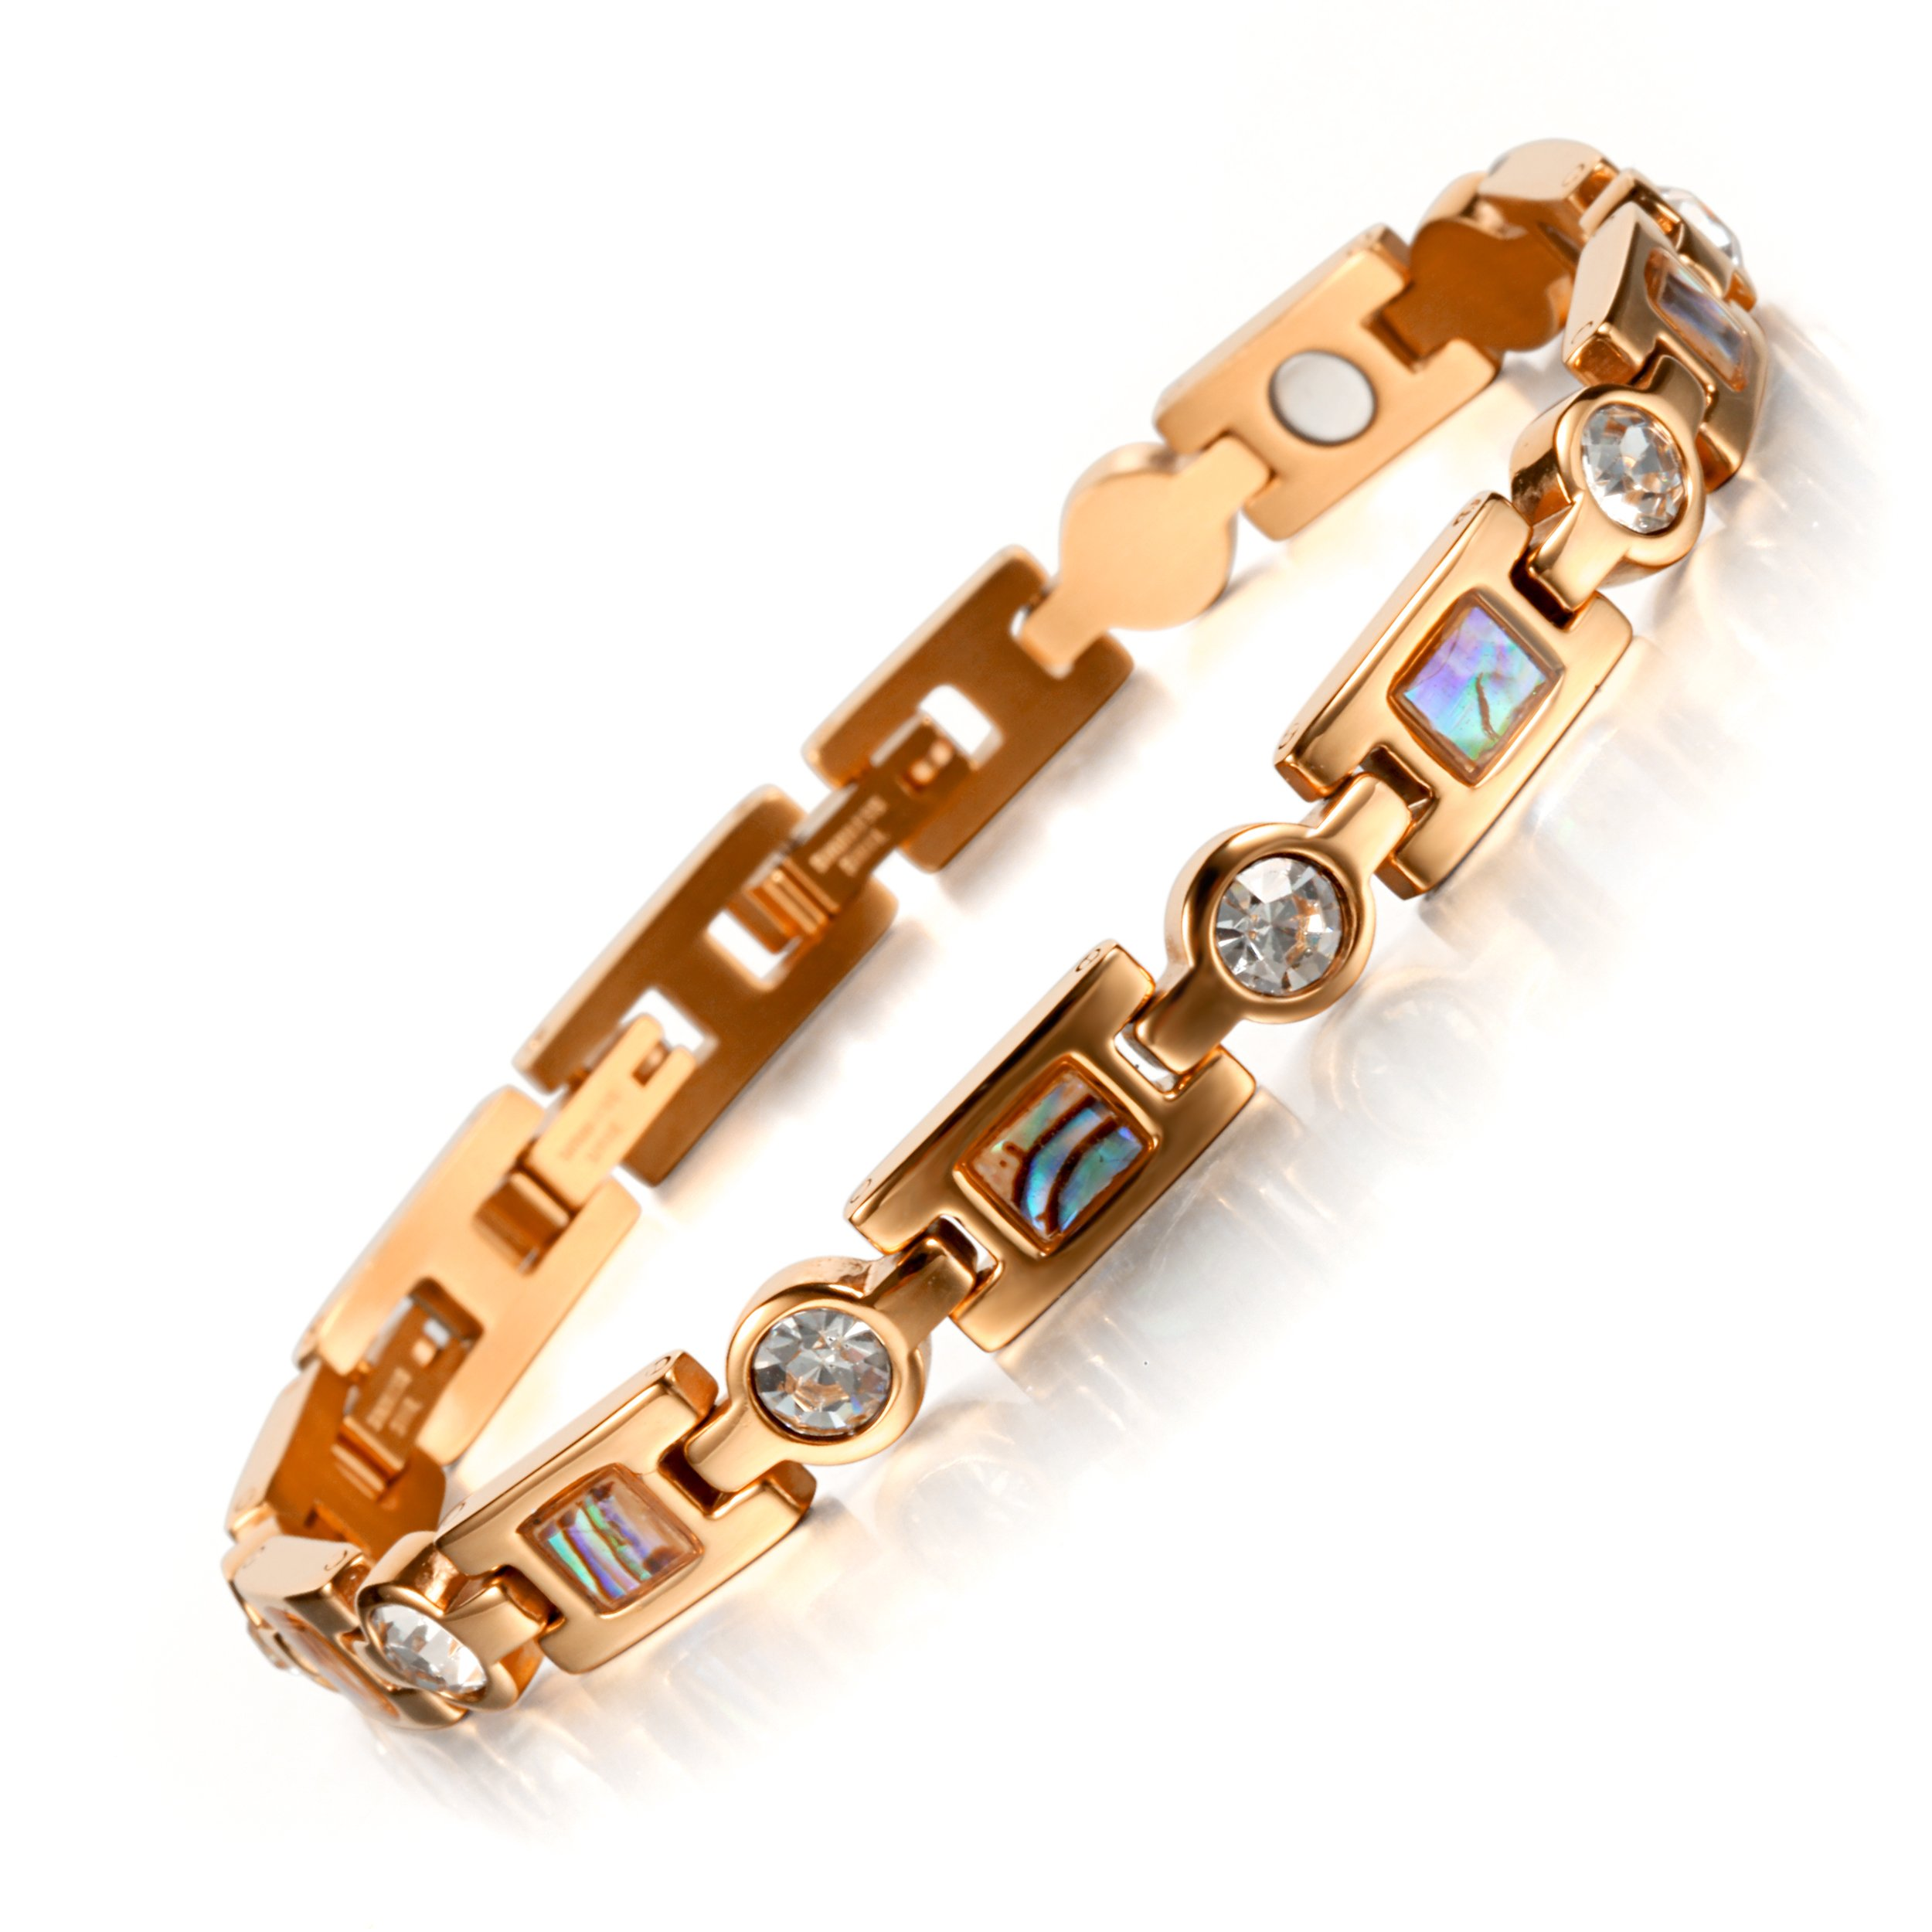 Rainso Titanium Steel Magnetic Therapy Bracelets for Women Rhinestone Health WristBand with 3 Smart Buckle (Rose Gold)